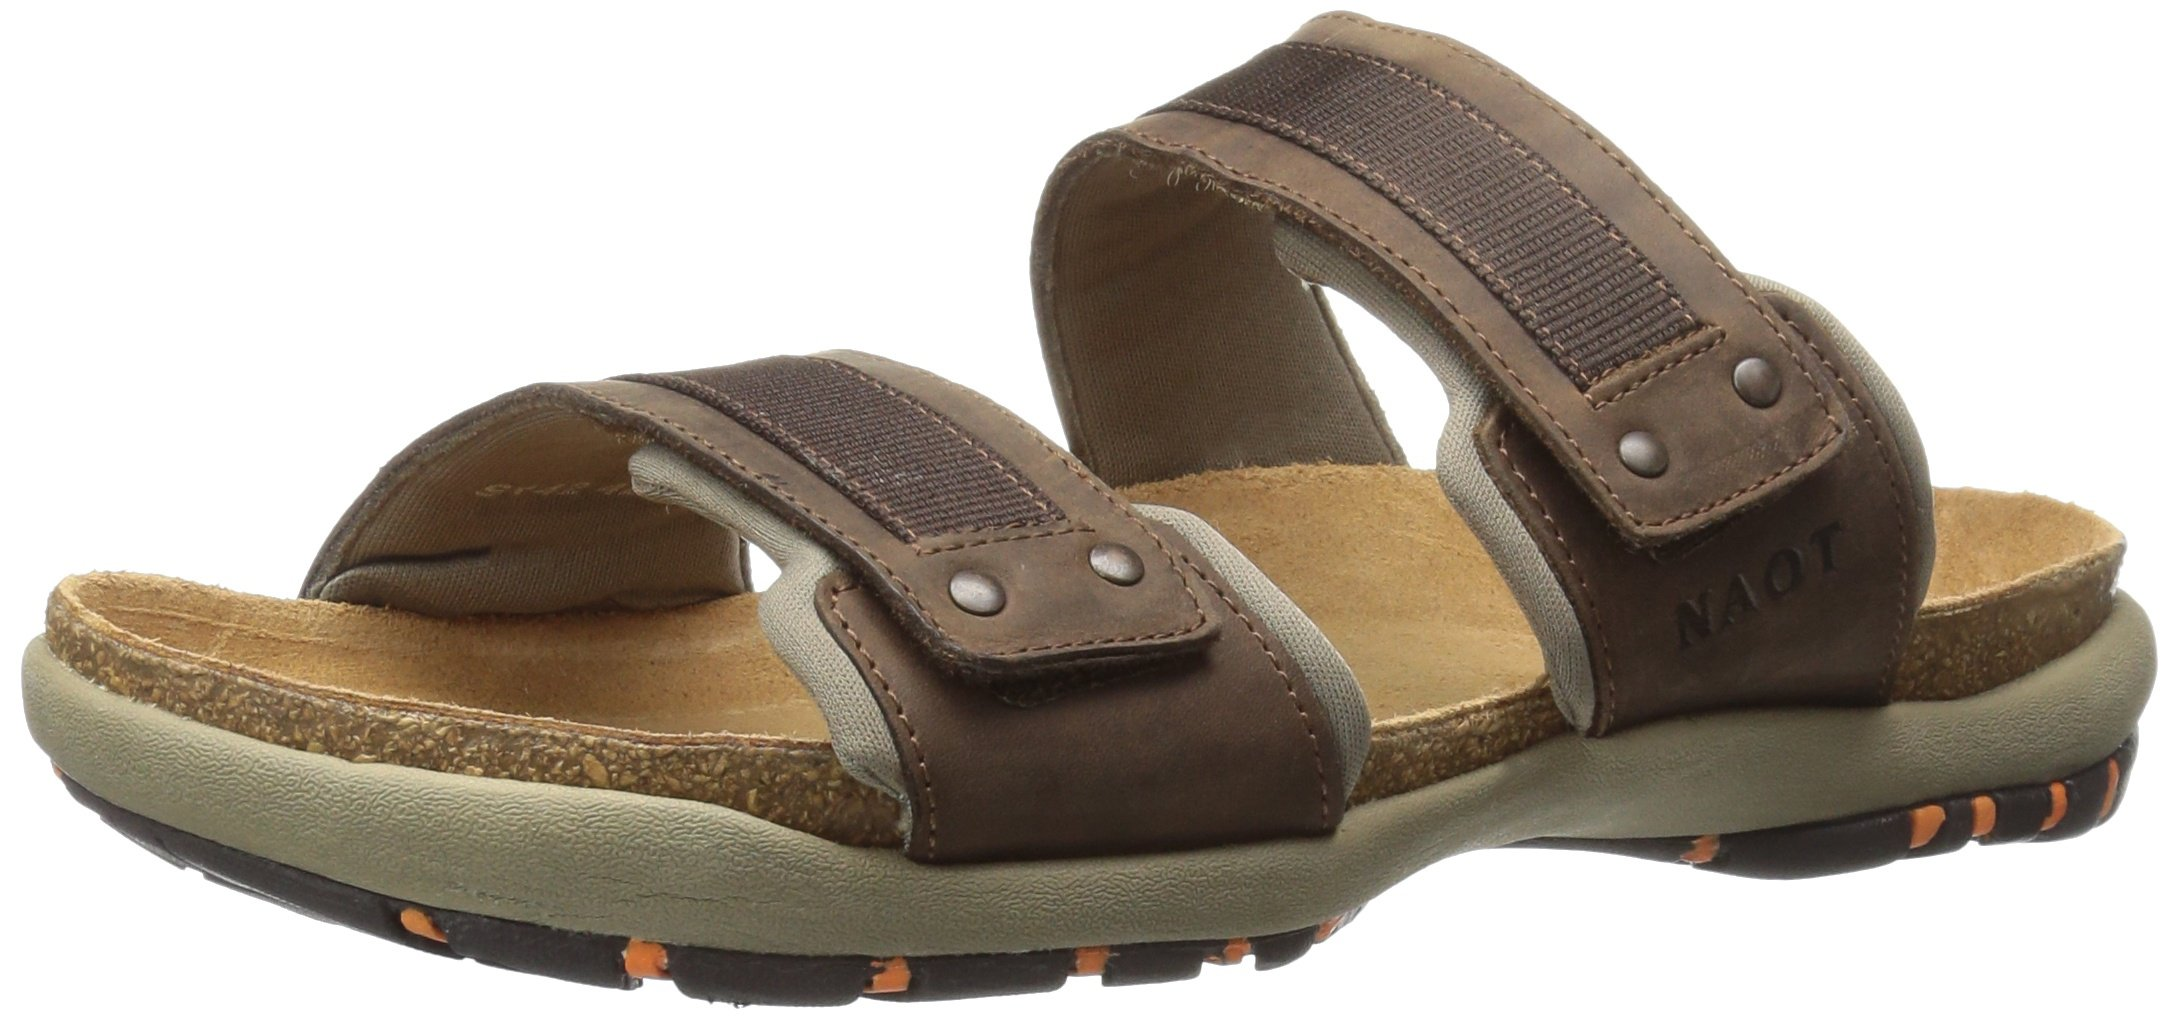 Naot Men's Climb Flat Sandal, Brown, 43 EU/10 M US by NAOT